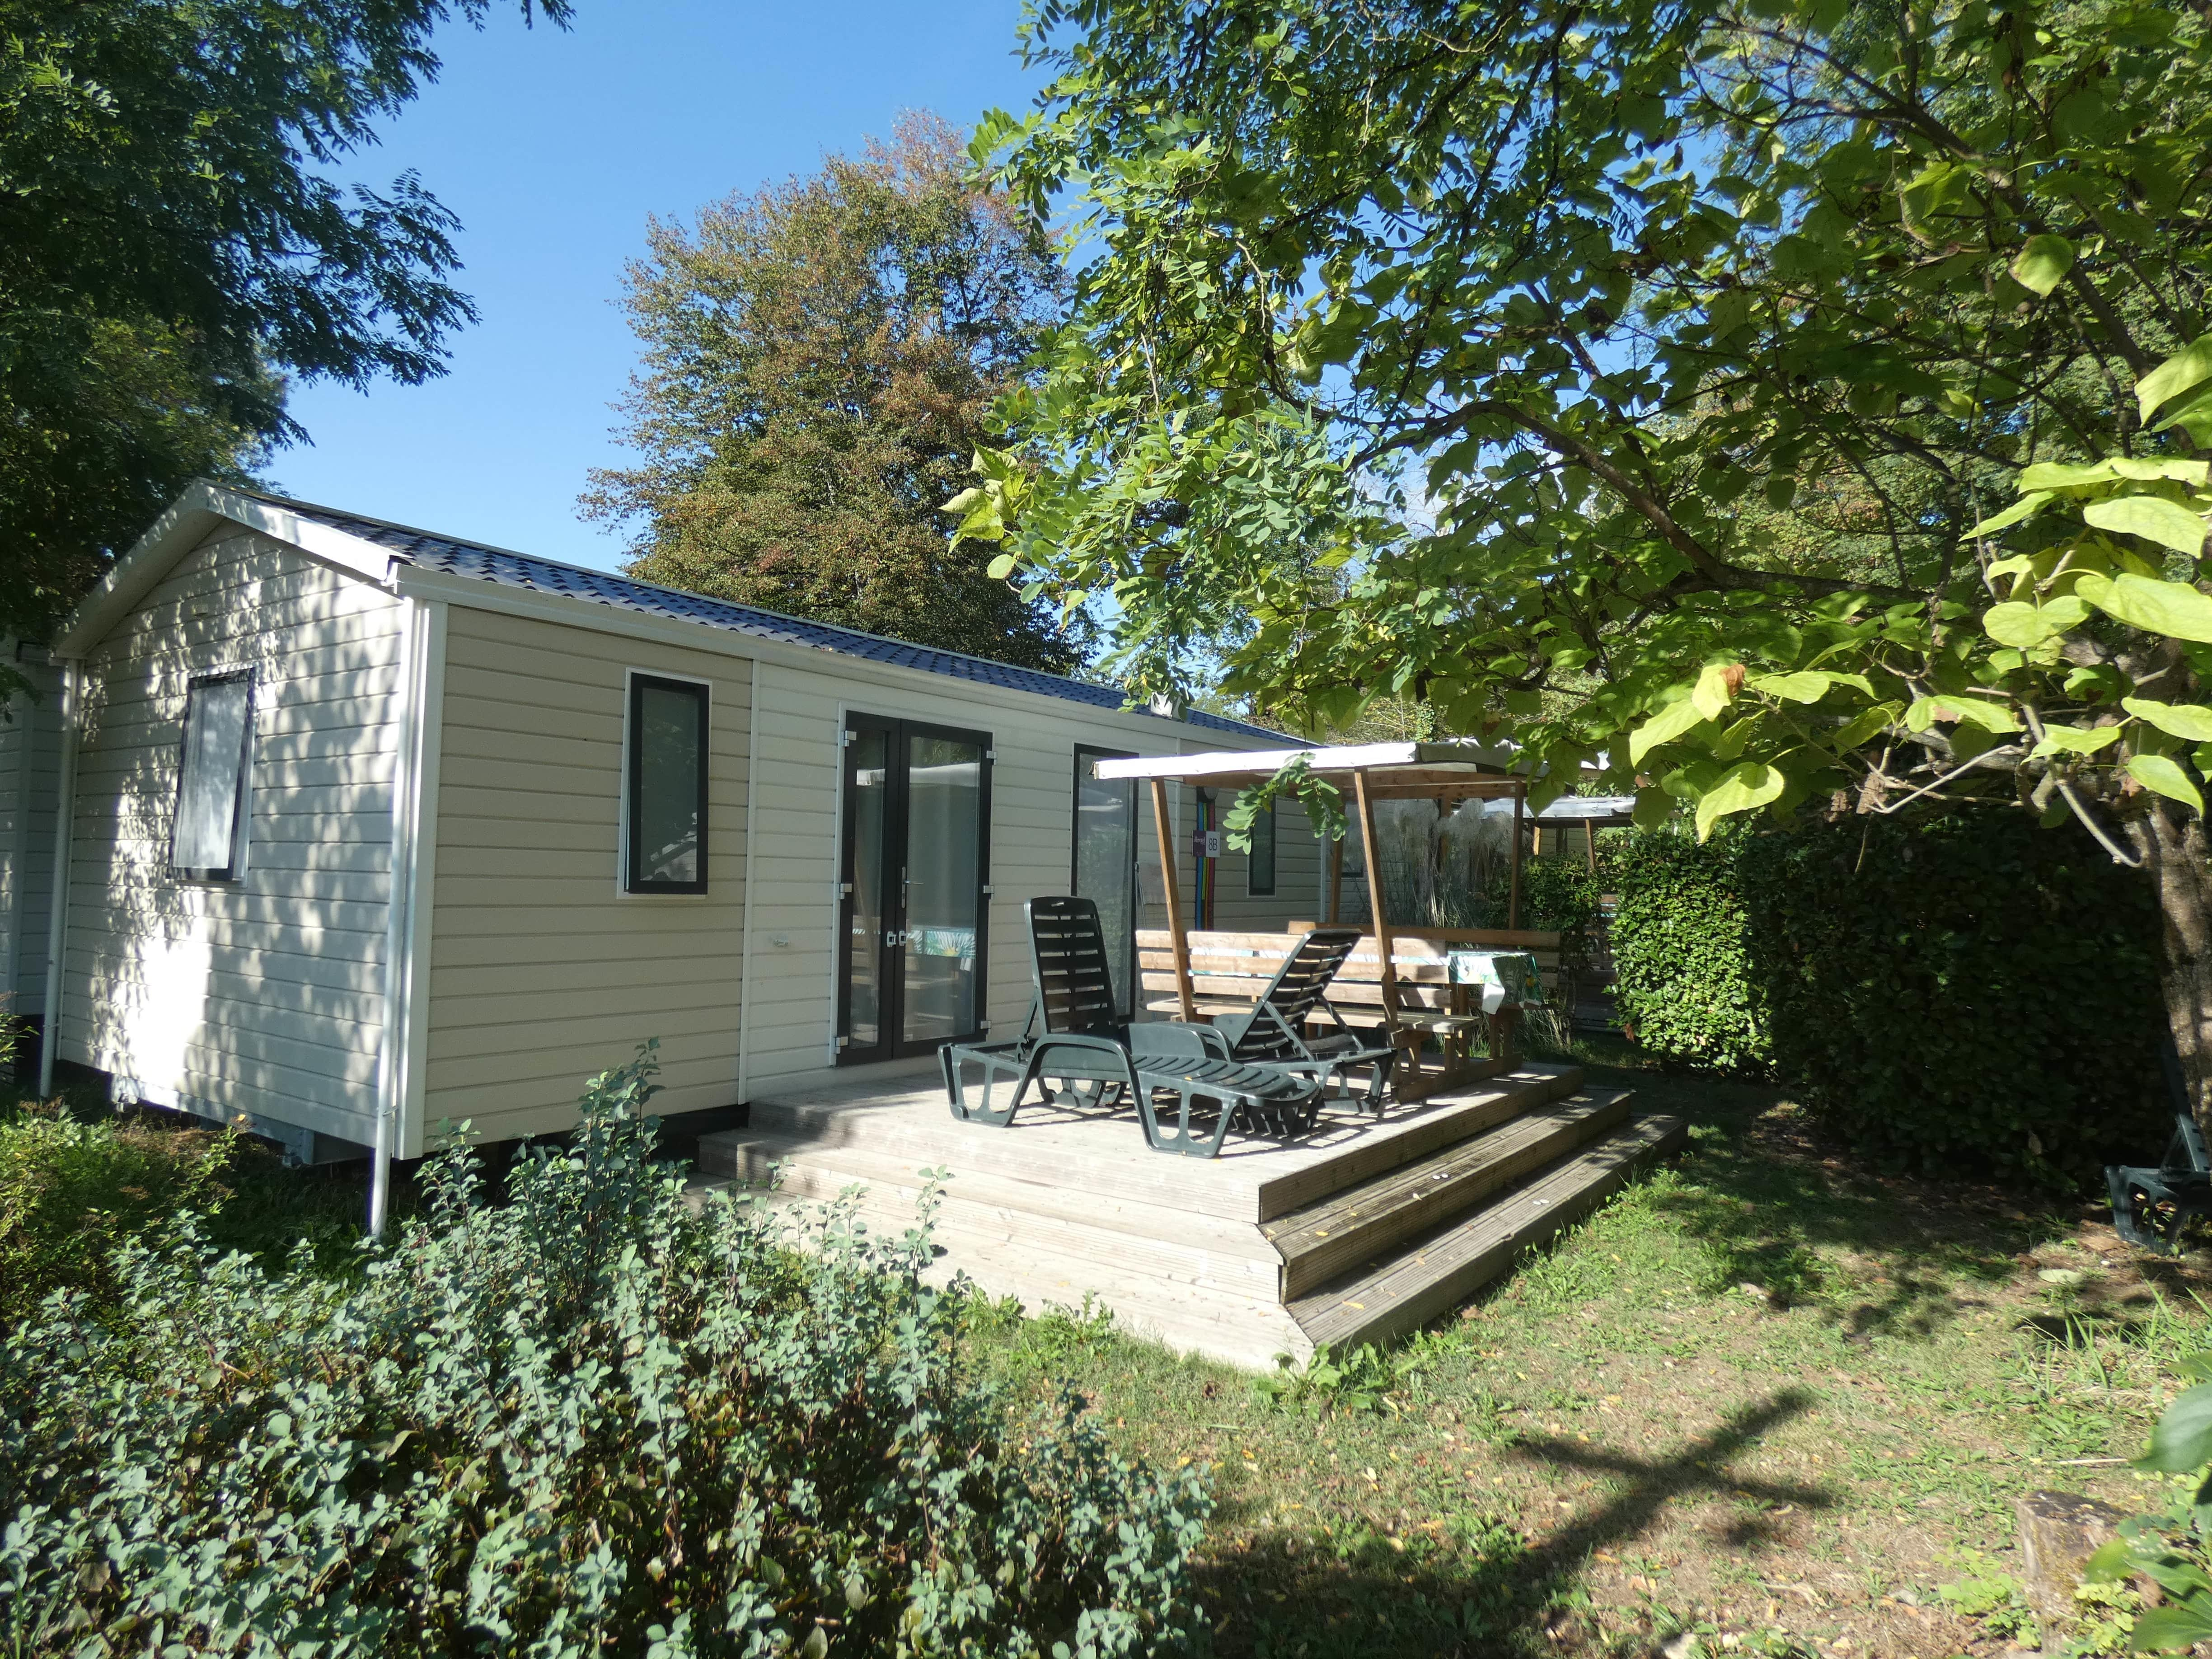 Accommodation - Mobile-Home Santa Fe (31 M²) - AIROTEL Camping Les Trois Lacs